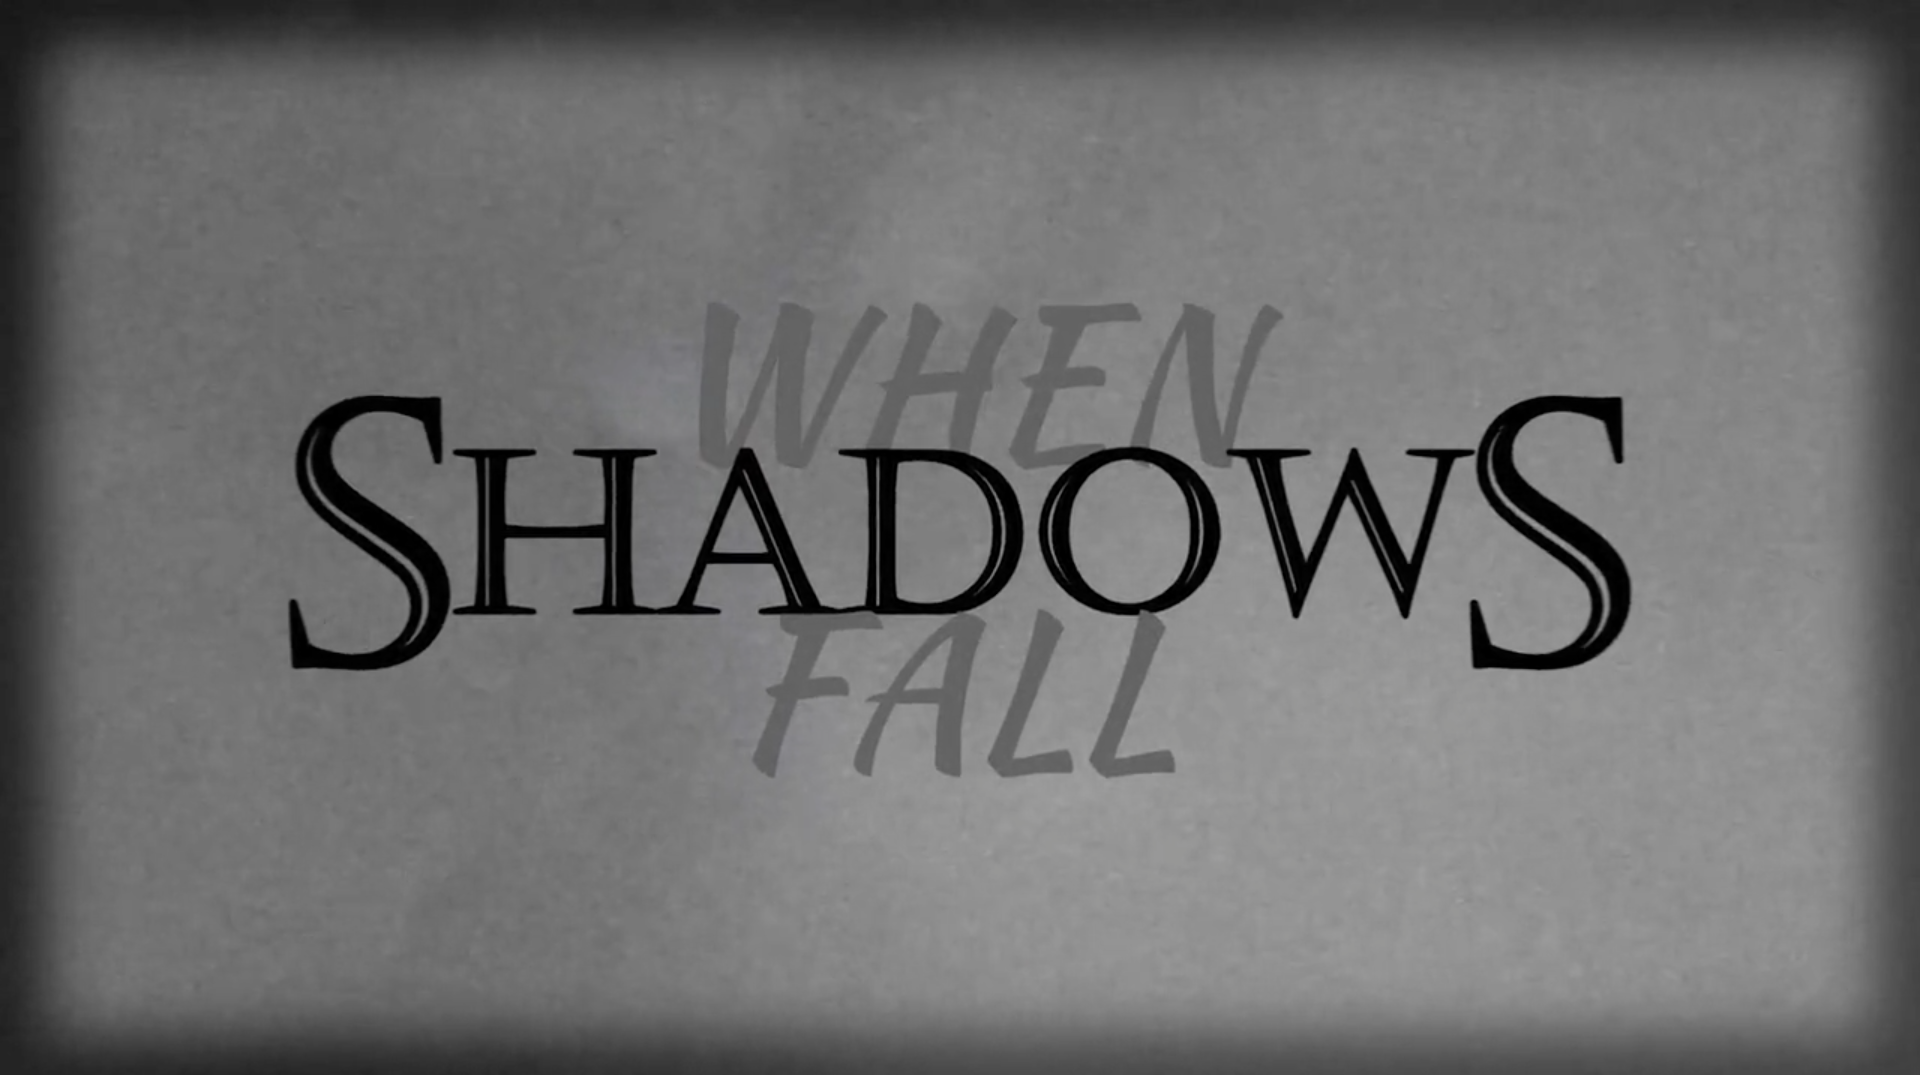 When Shadows Fall.png